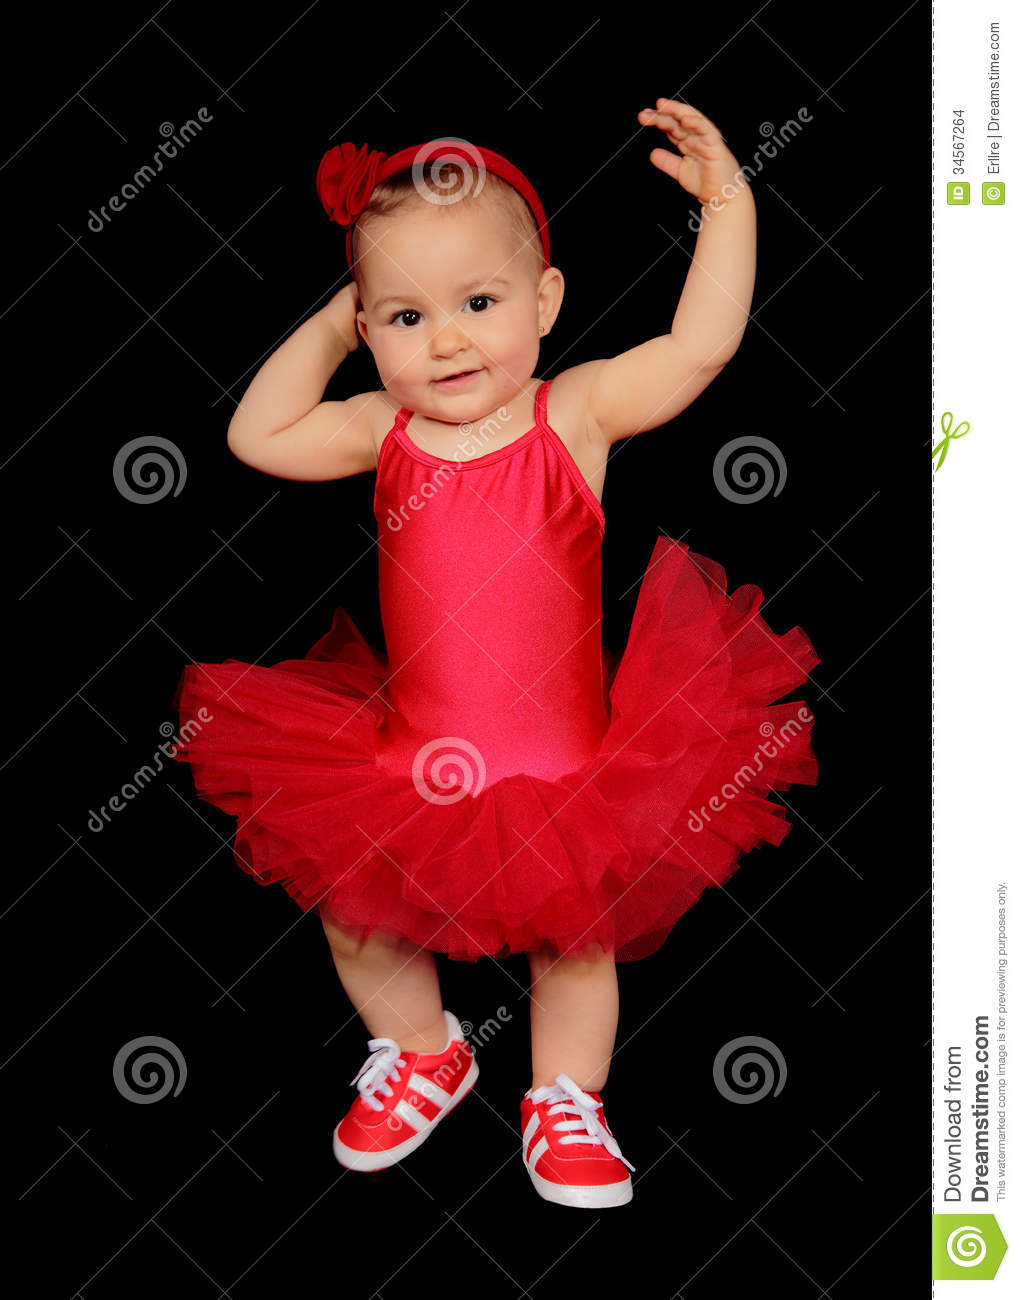 Picture of a pretty baby with a dancer dress on a black background.